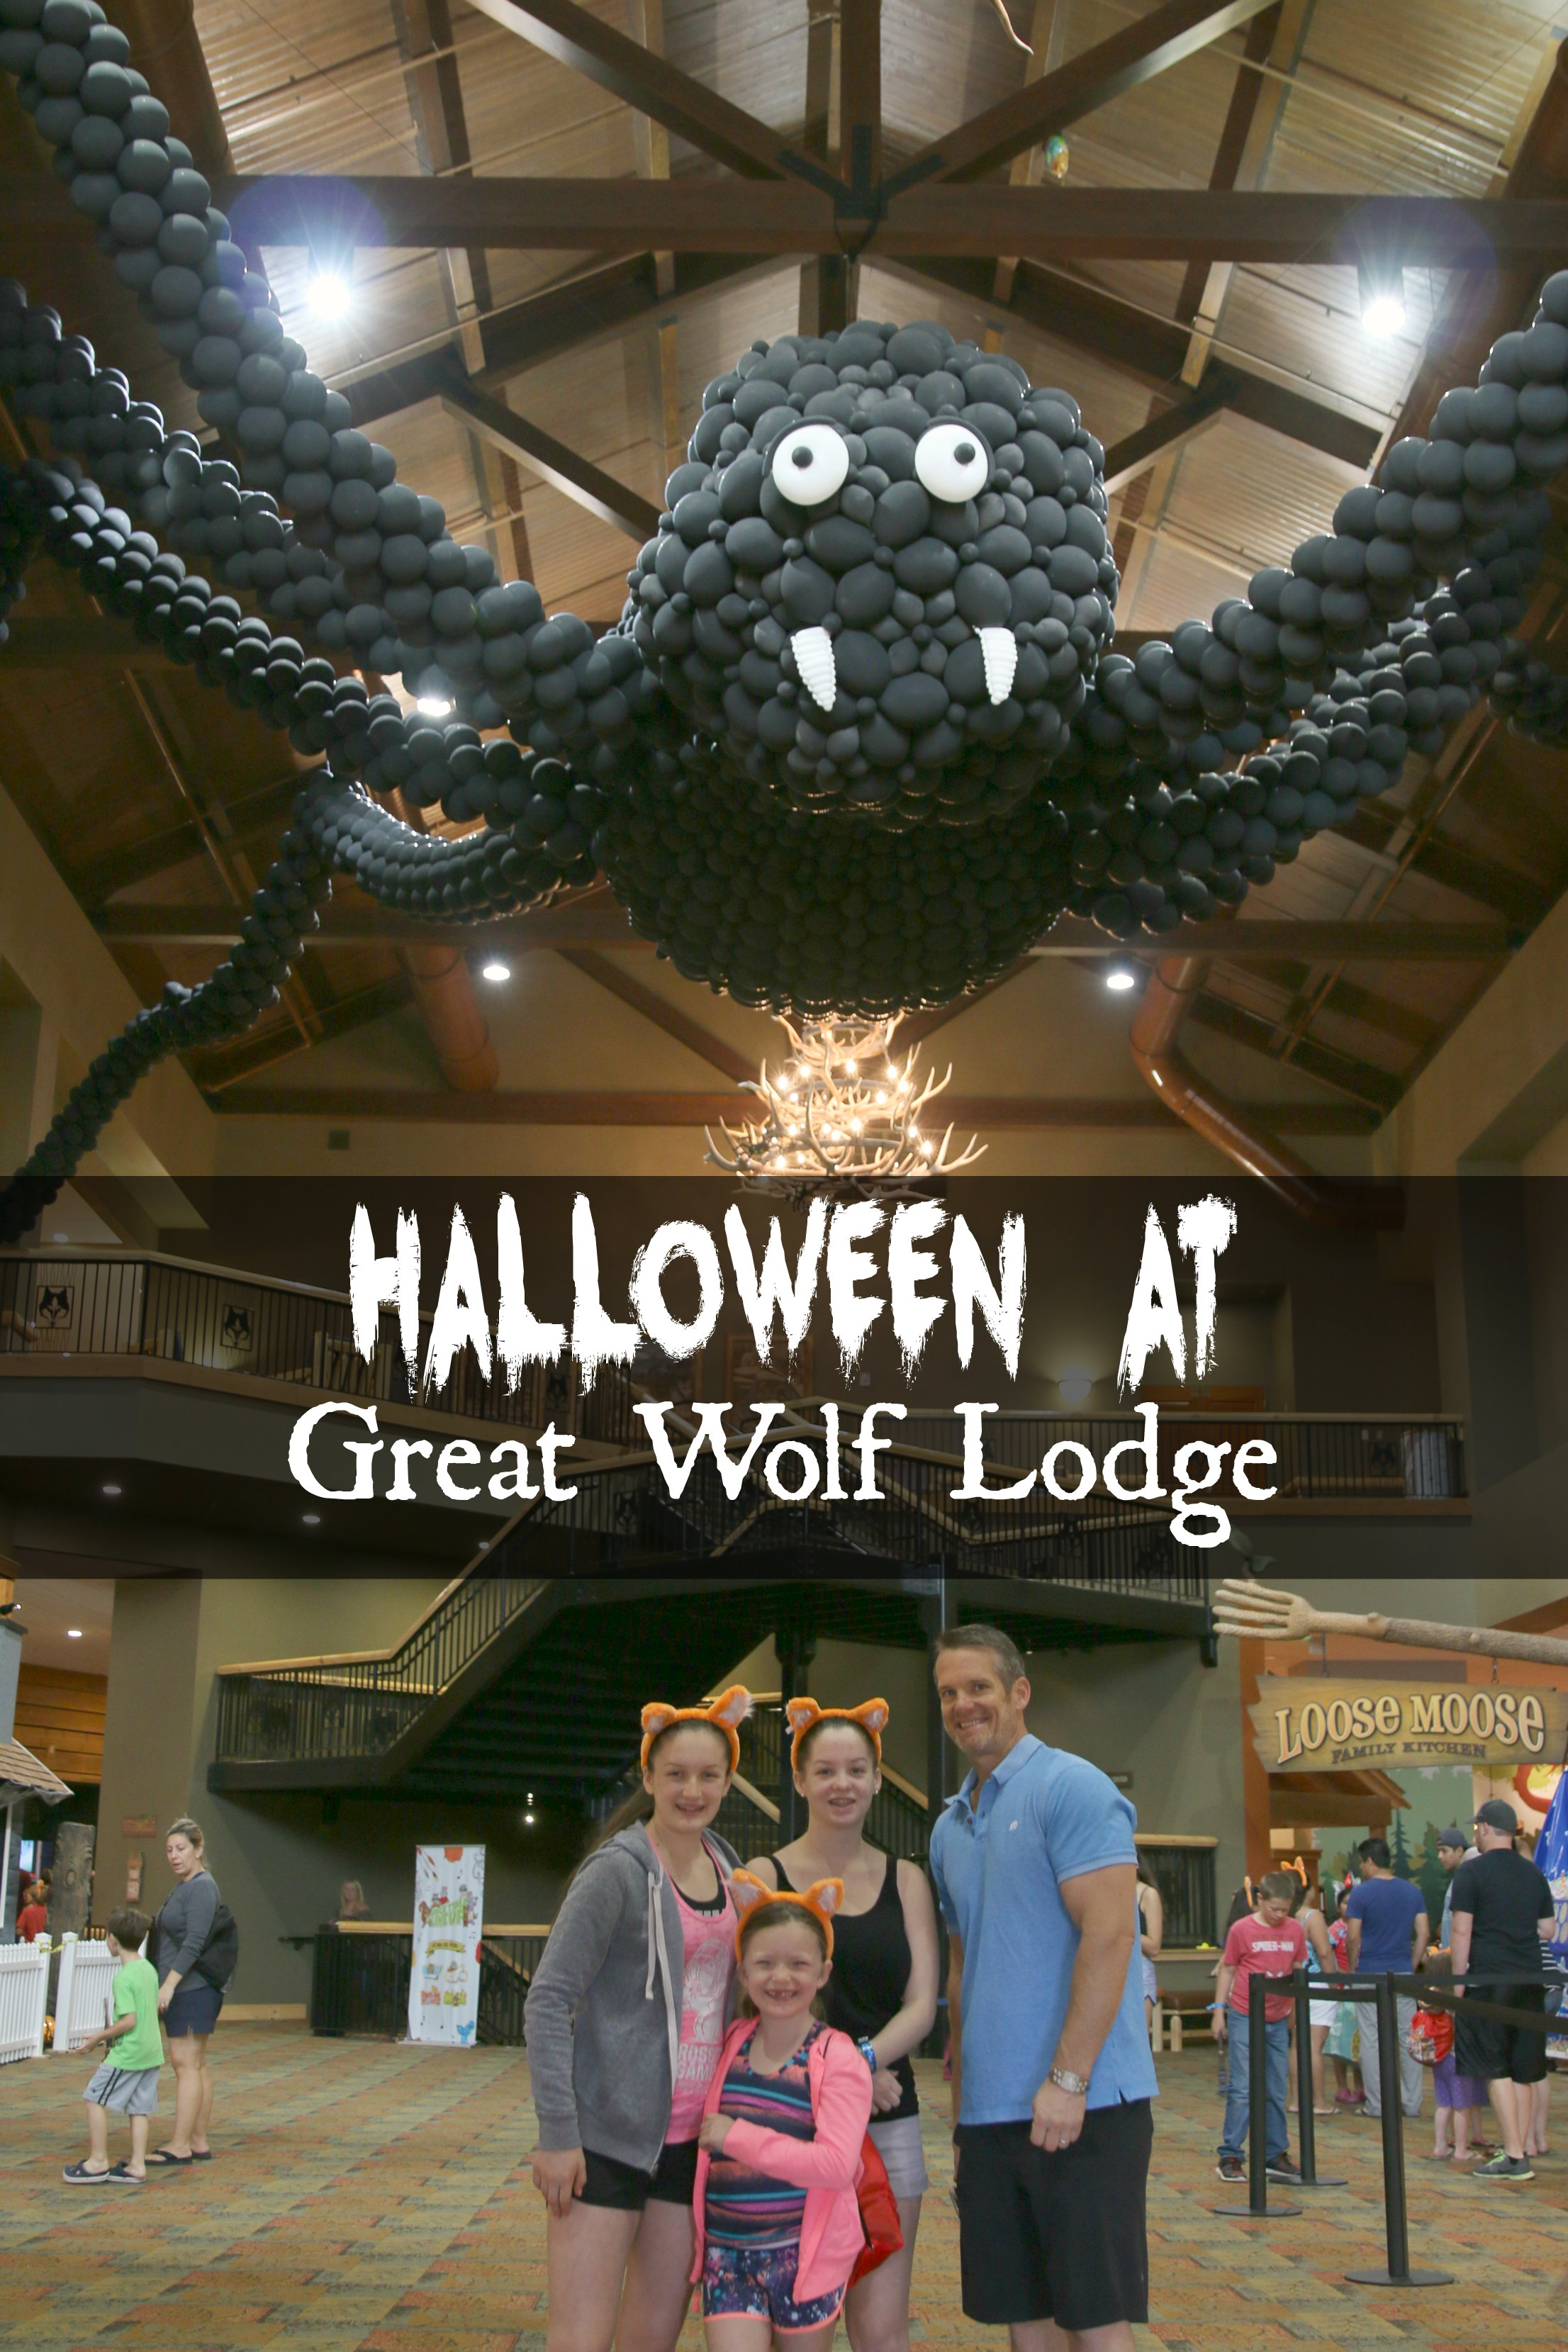 Halloween At Great Wolf Lodge | It's a Lovely Life!